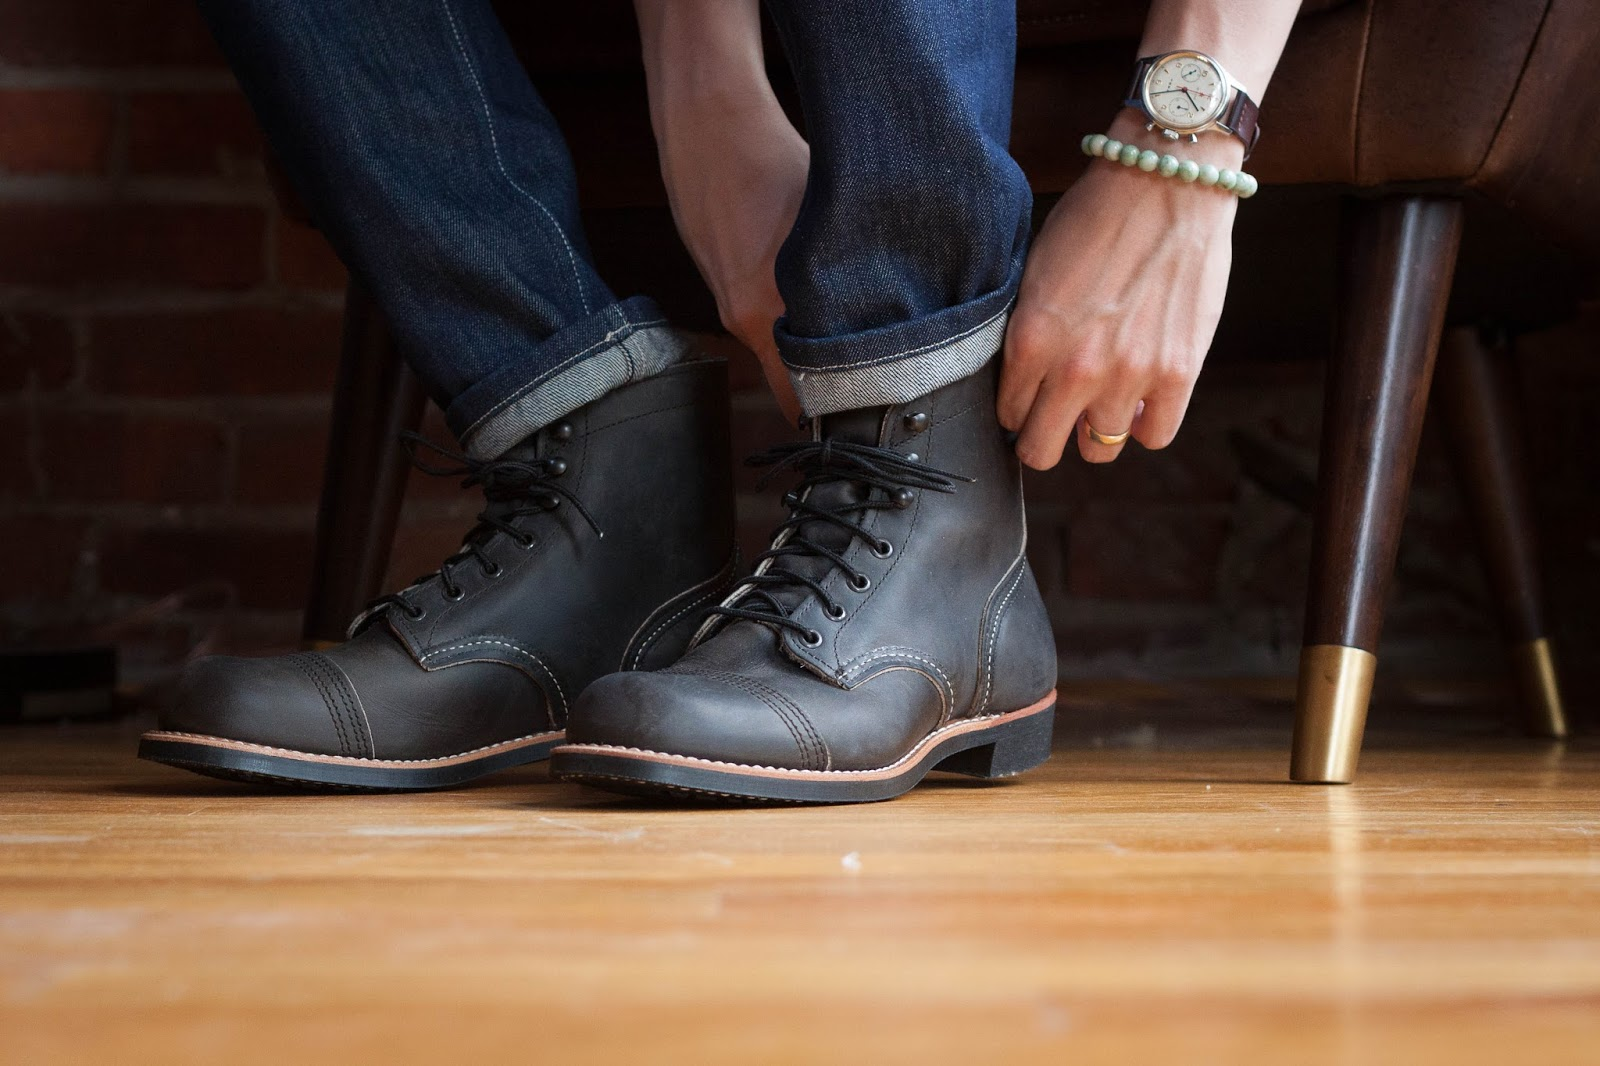 9e515bb7ce6 Workwear 101 - First Impressions - Red Wing Iron Ranger 8086 ...